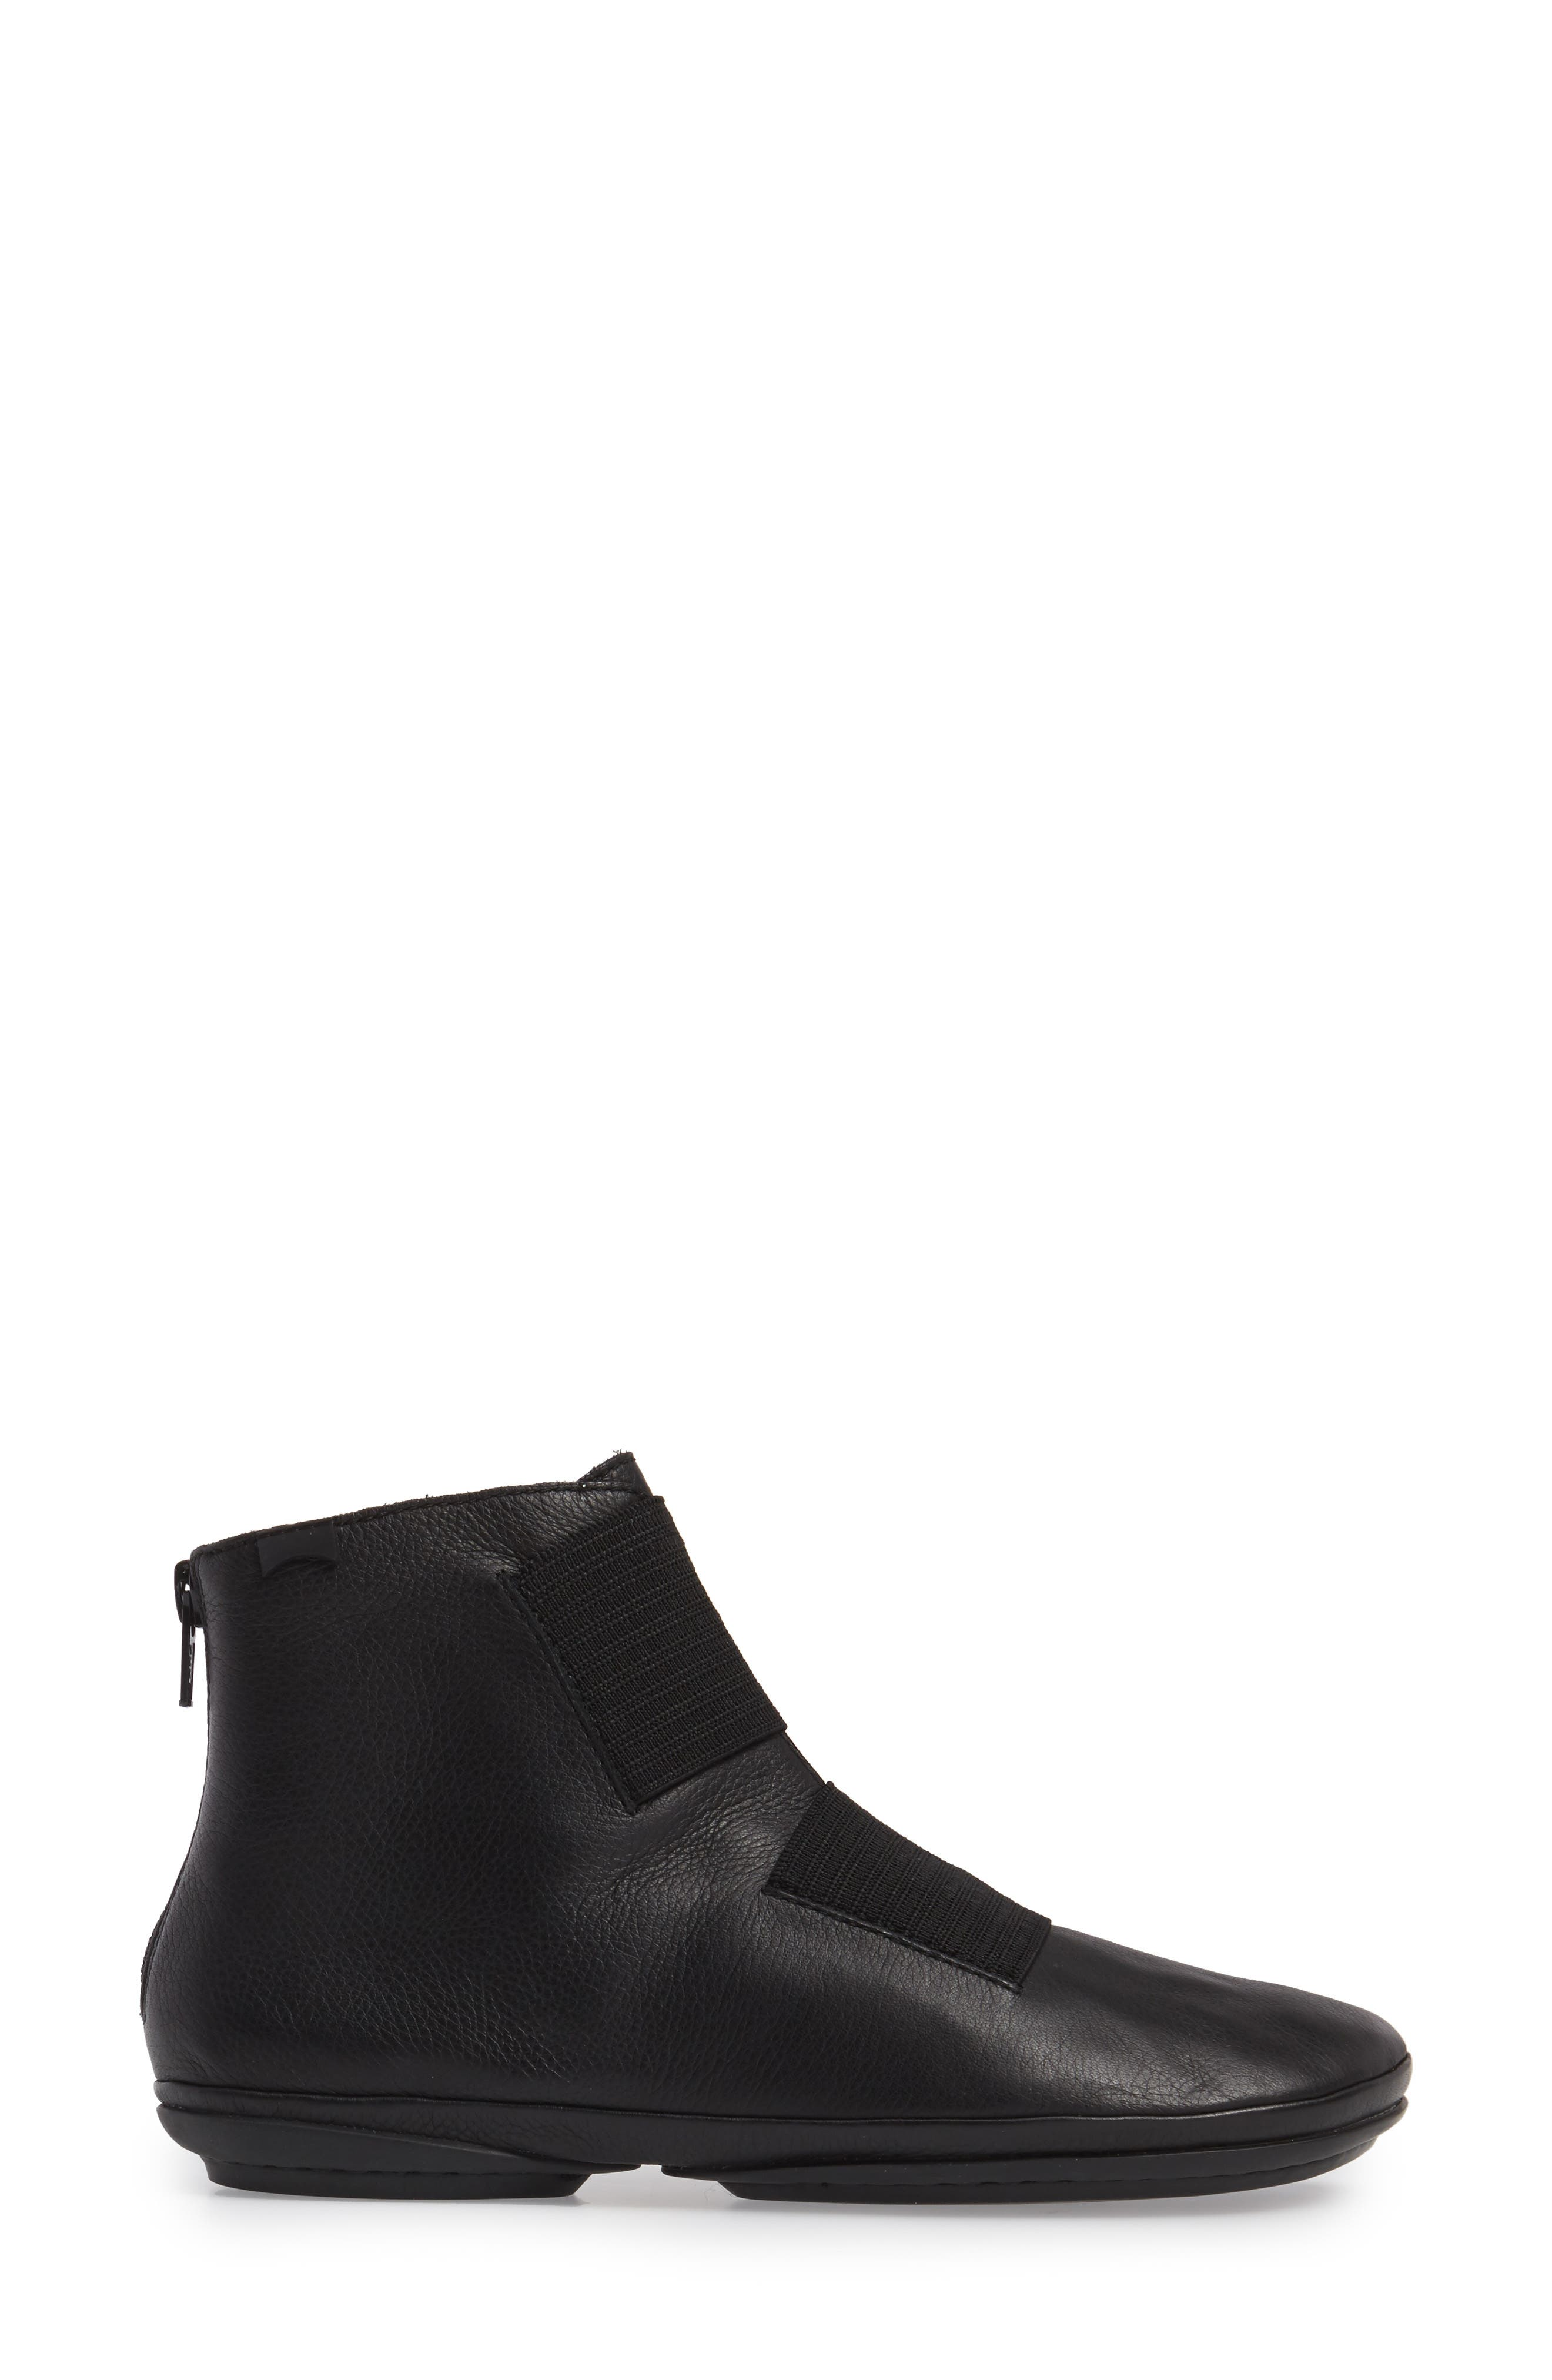 'Right Nina' Bootie,                             Alternate thumbnail 3, color,                             001